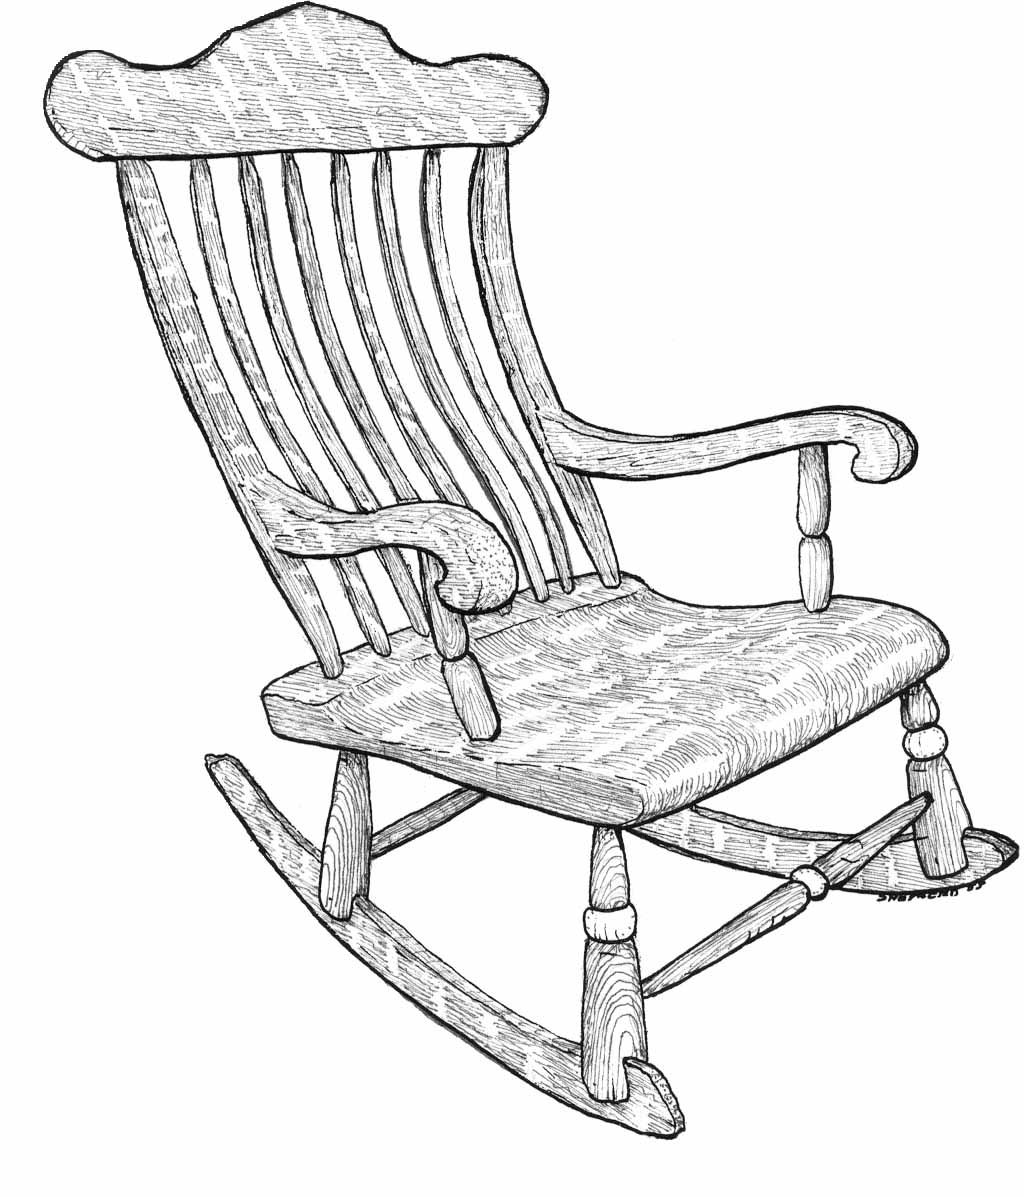 how to draw a chair sideways